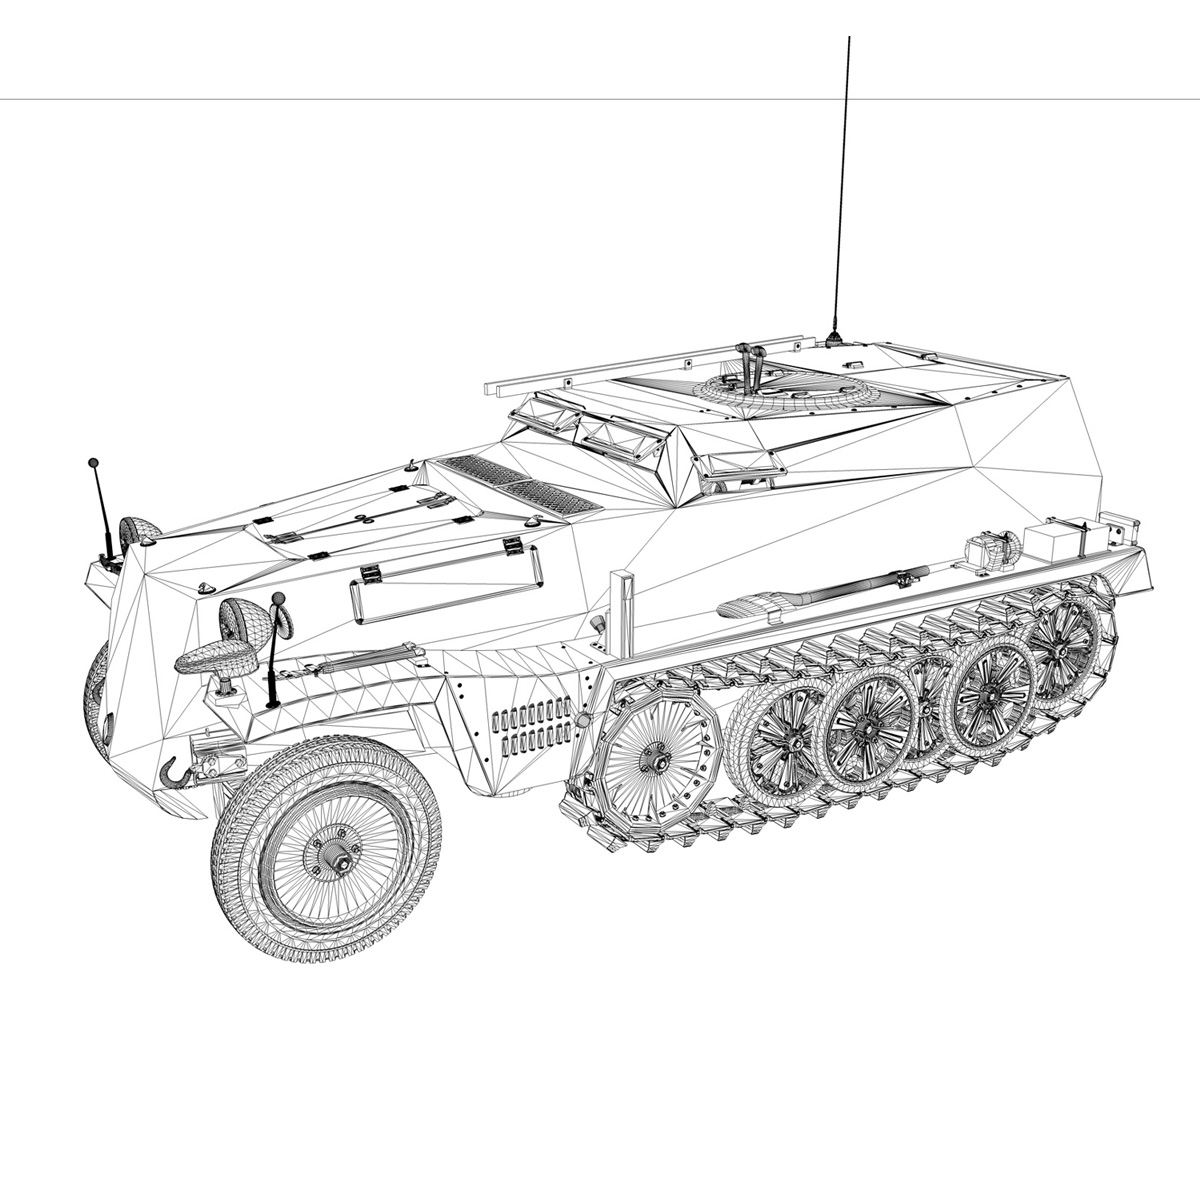 sdkfz.253 – beob.pz.wg. – observation vehicle 3d model 3ds fbx c4d lwo obj 269038